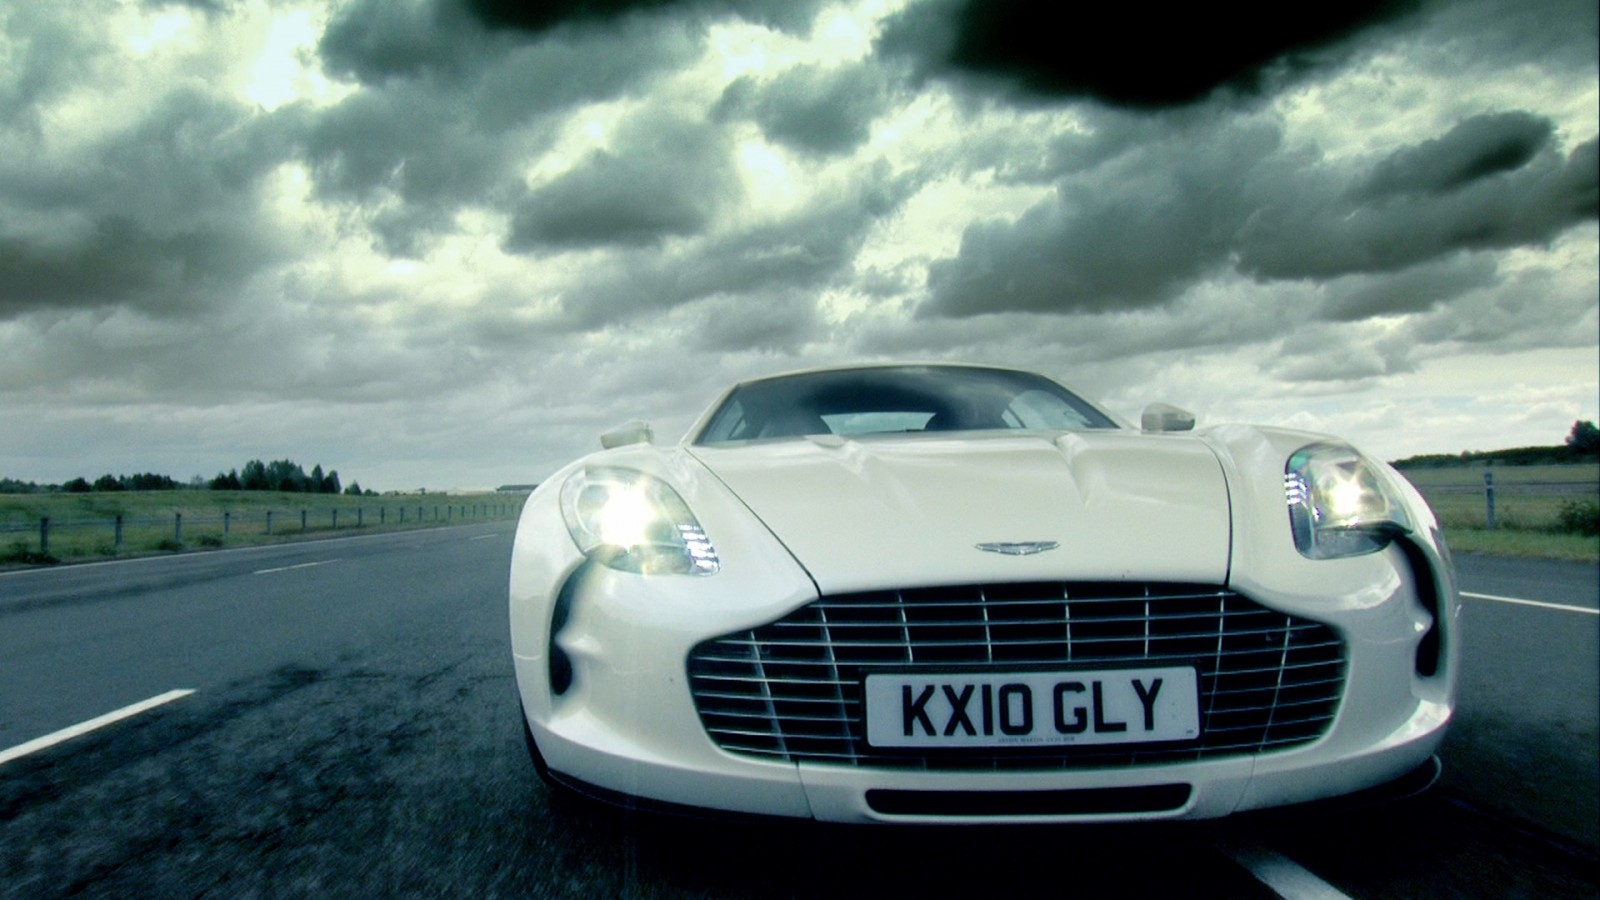 aston martin one 77  uk  flagship  costly  sport car  front  dusk HD Wallpaper